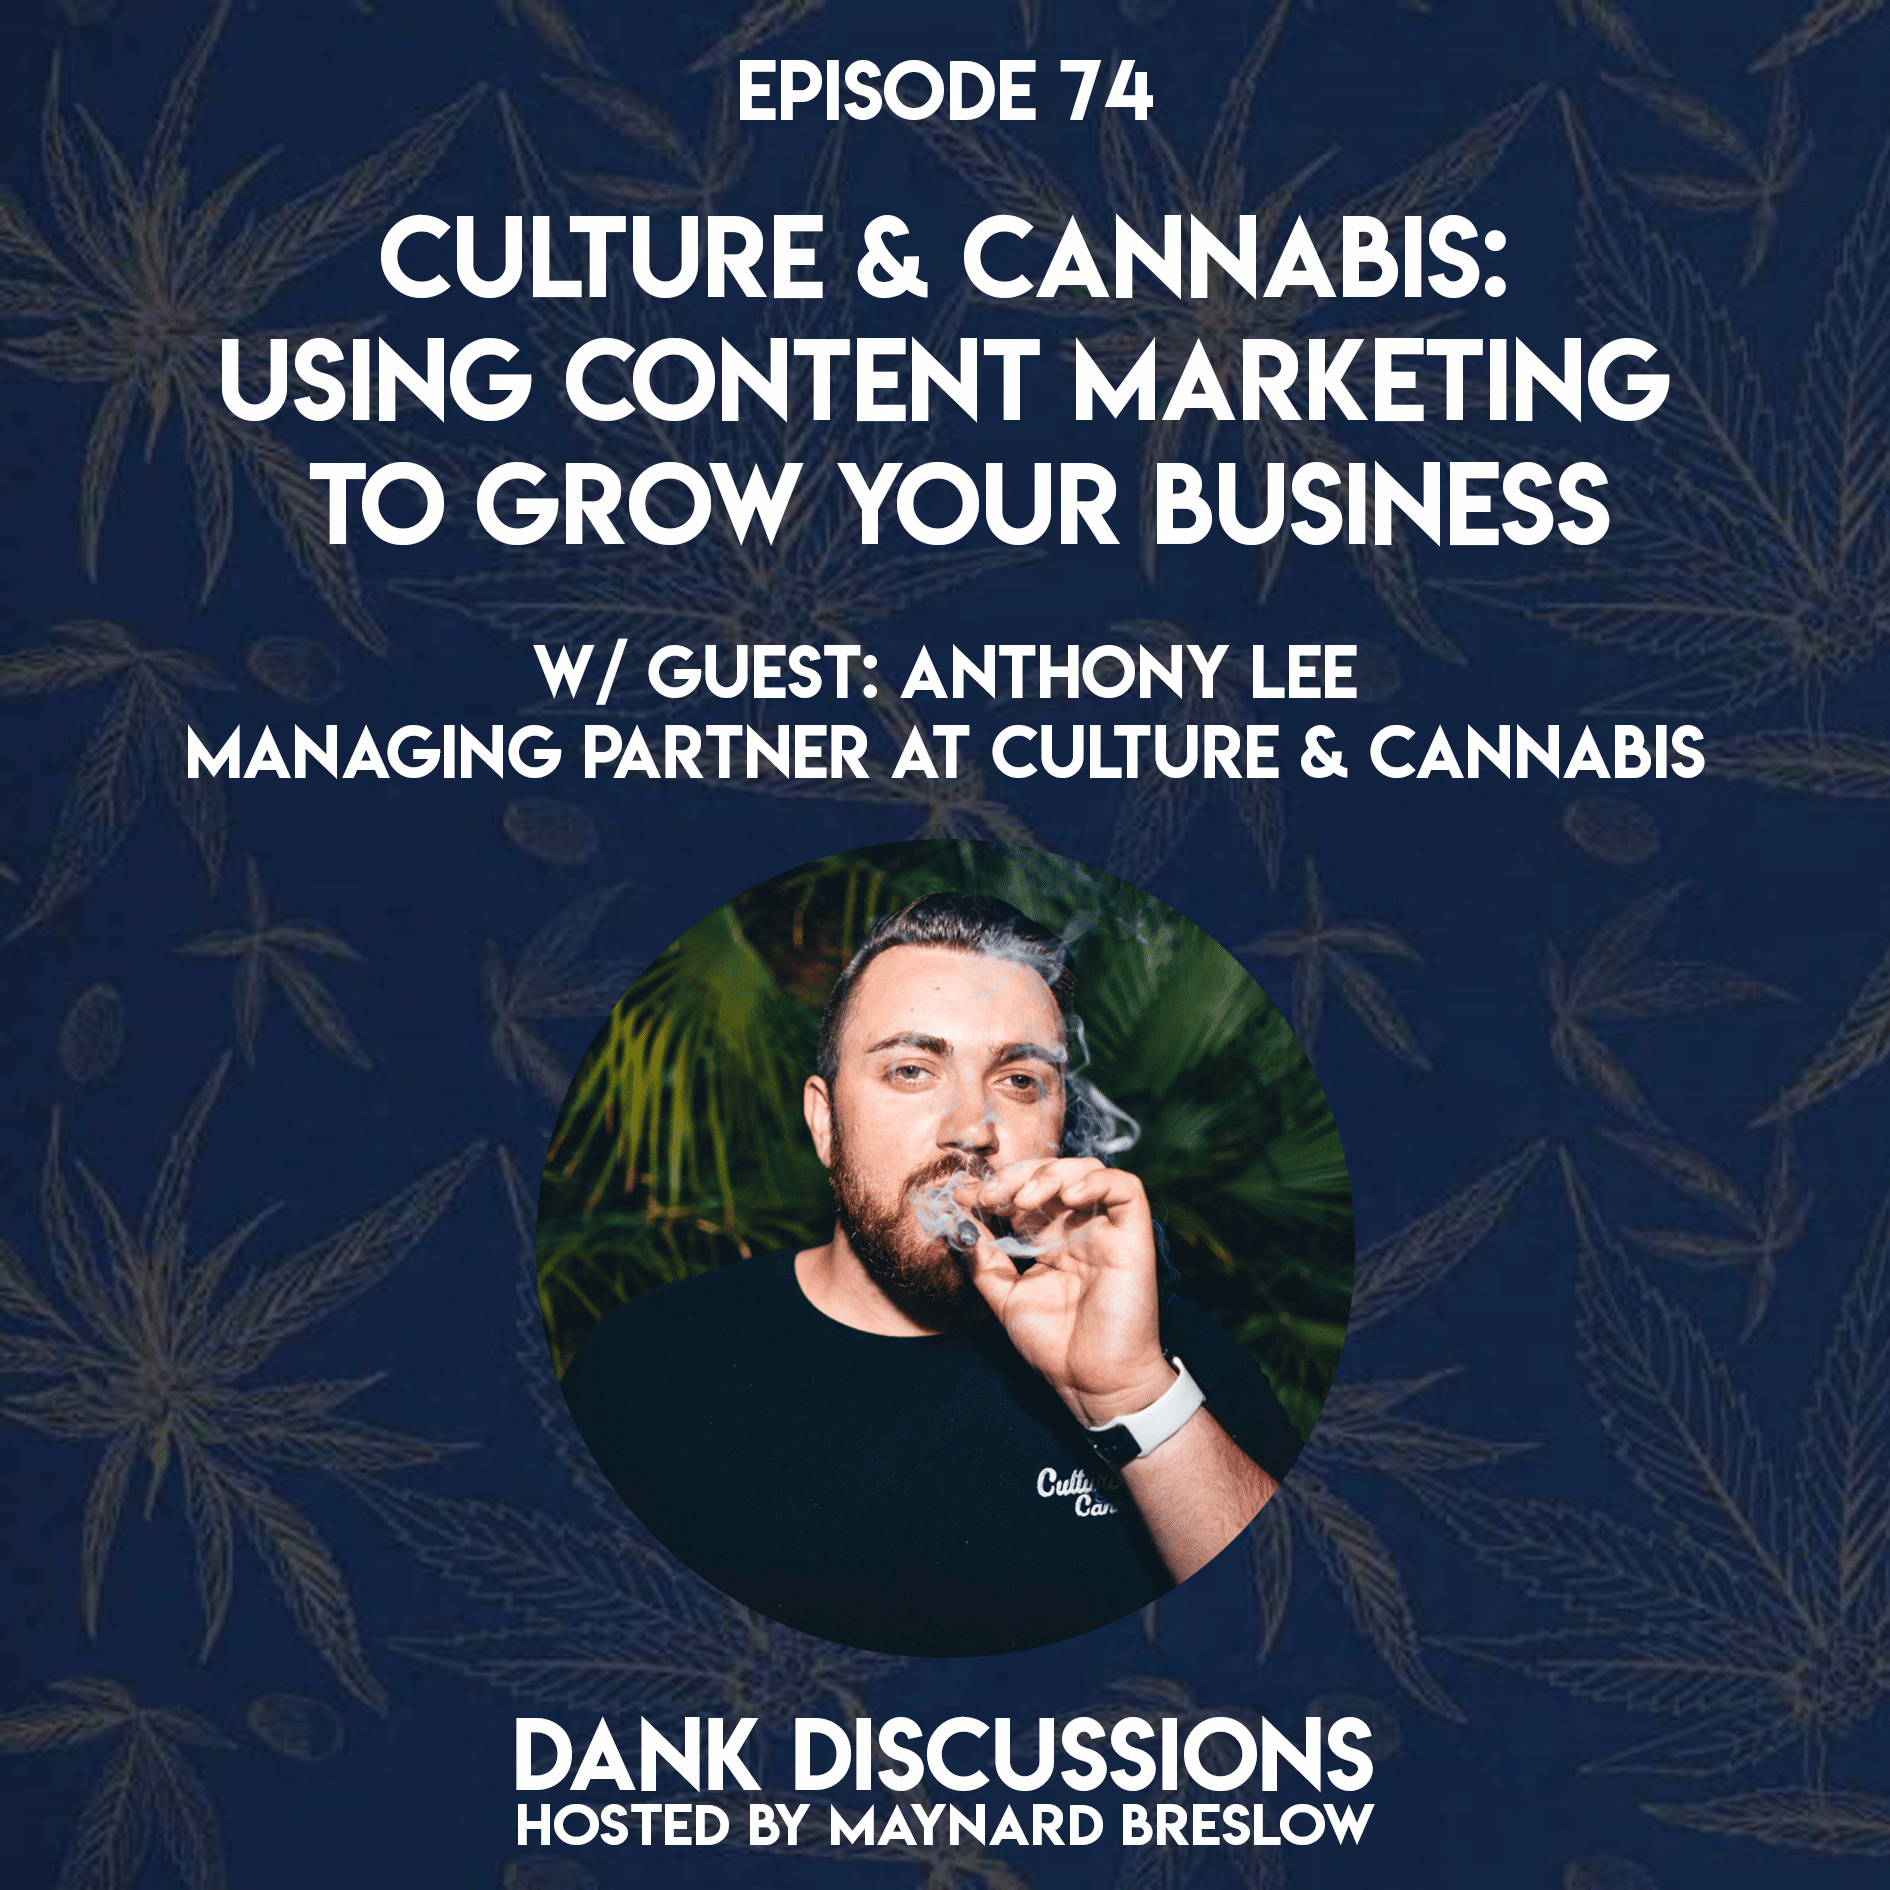 DANK Discussions - Deep Diving into the Legal Cannabis, Hemp, CBD Industry